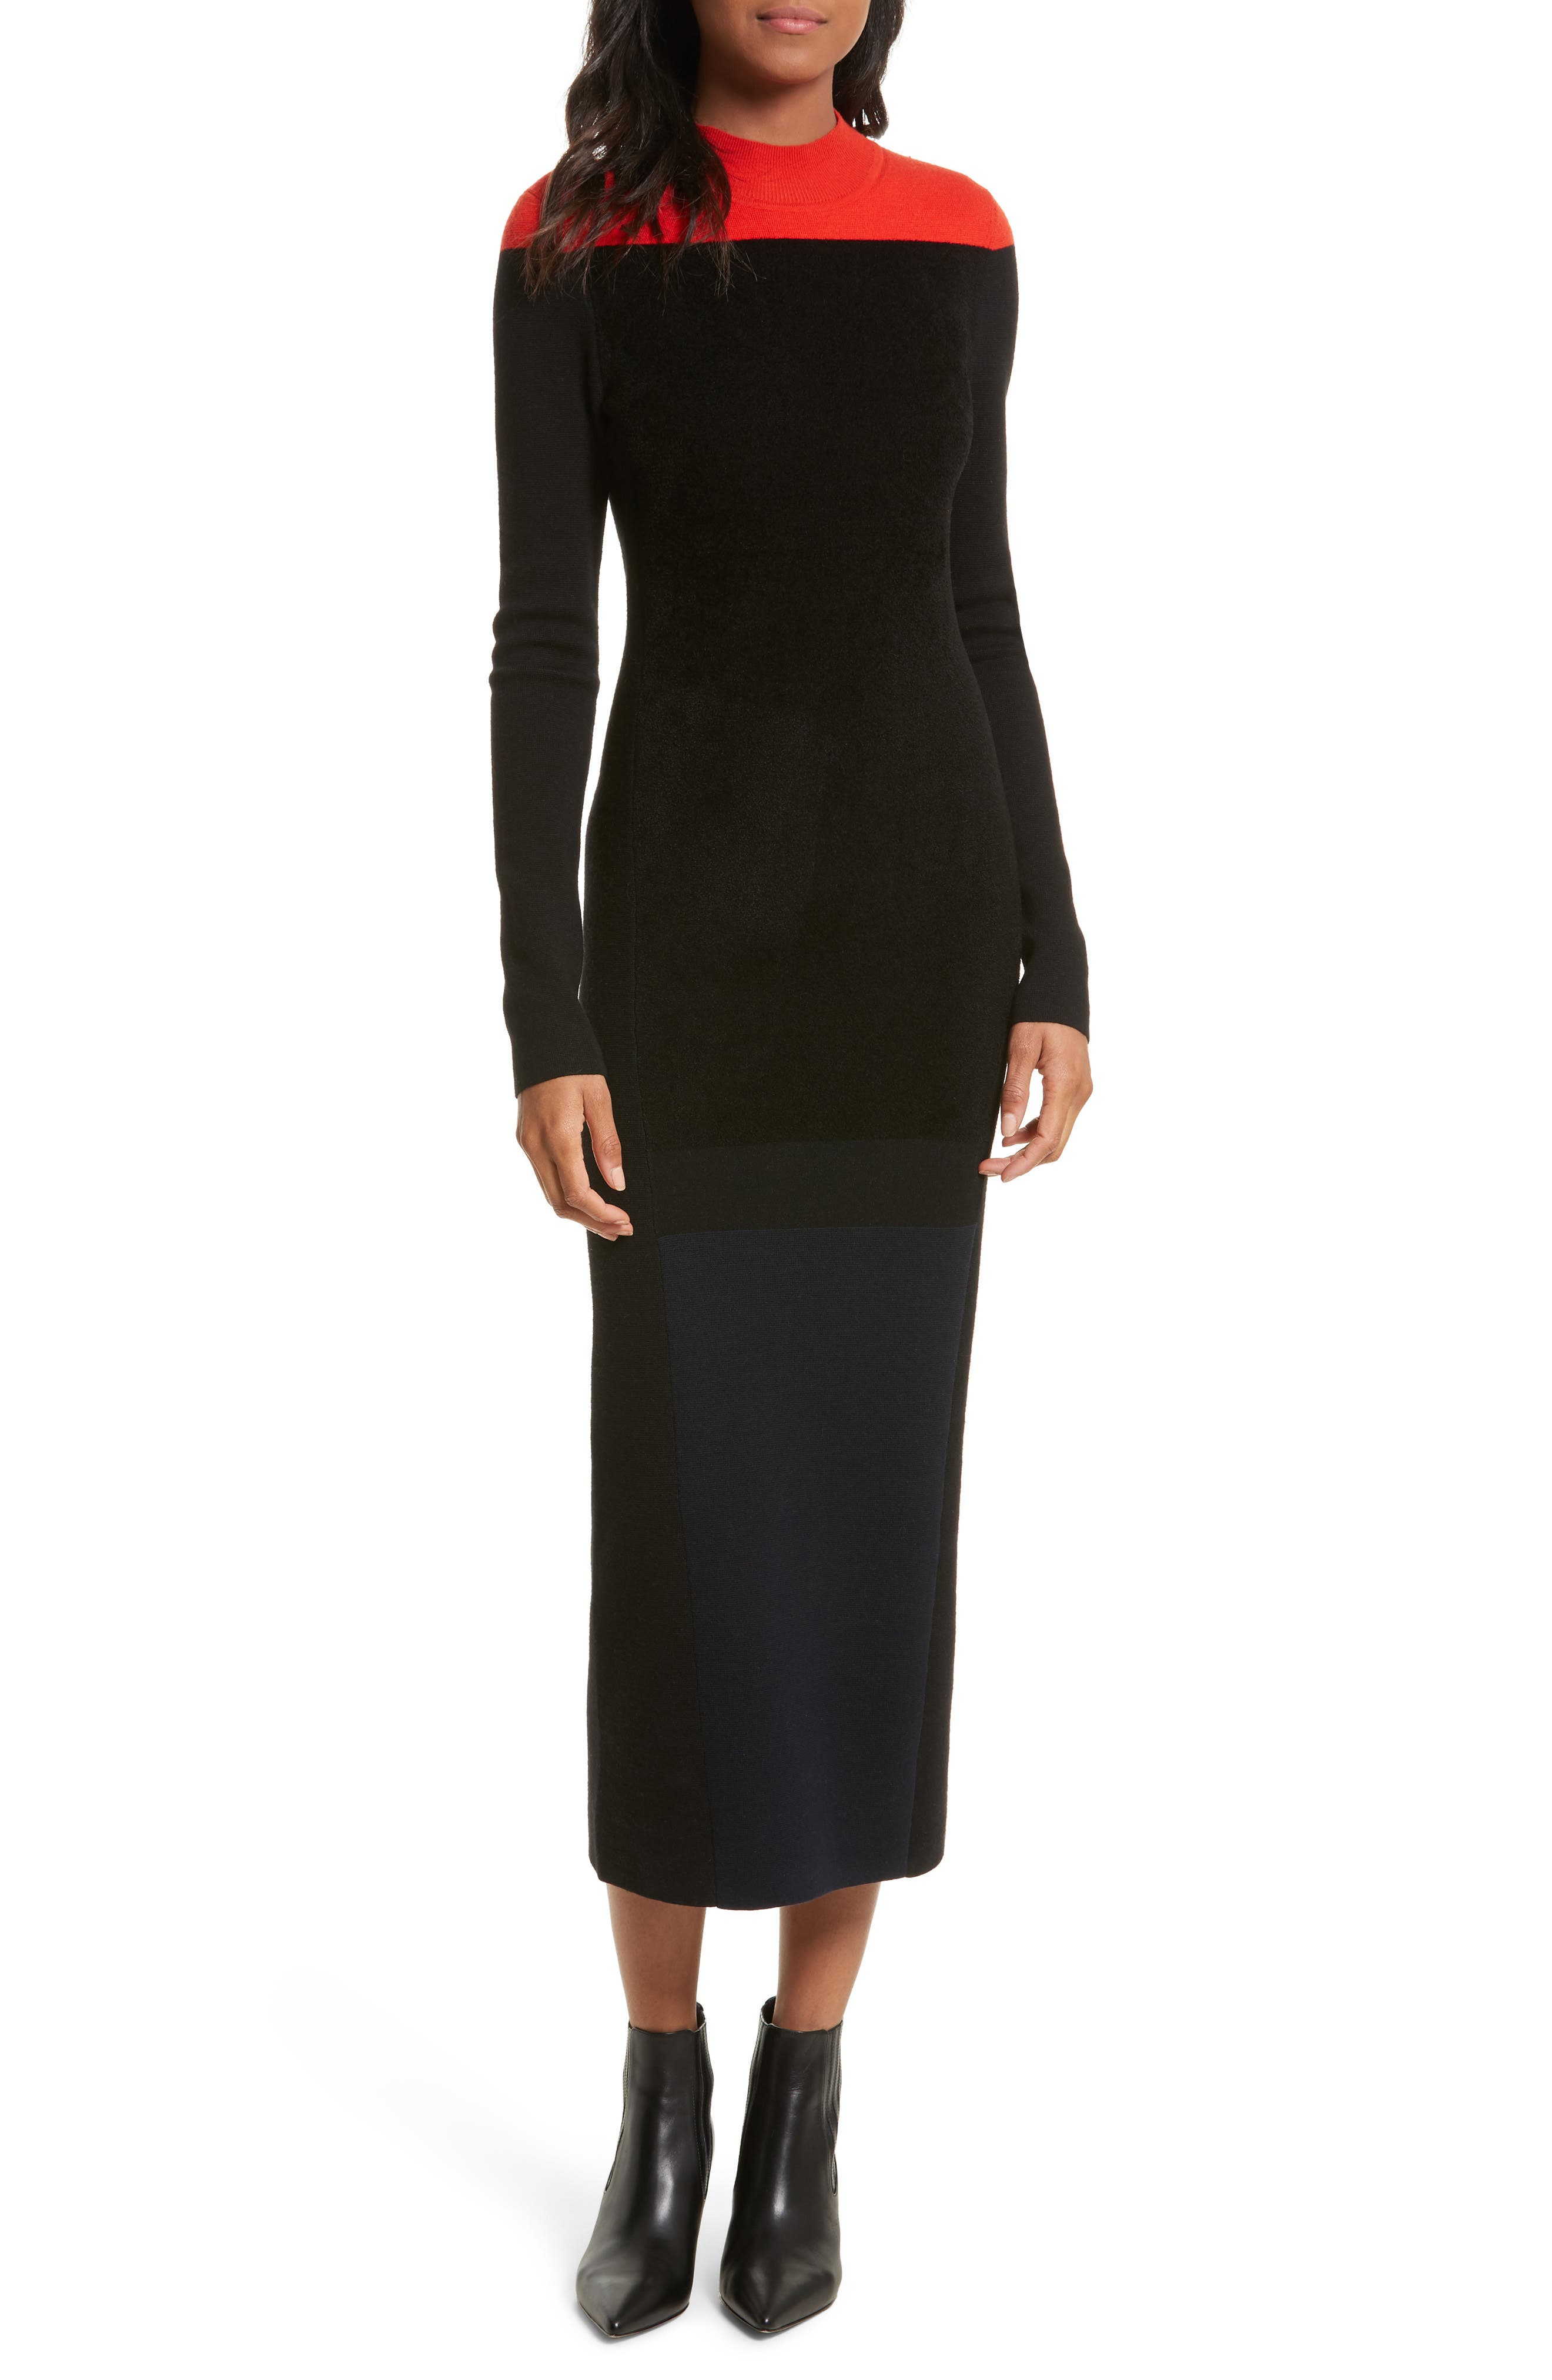 Alternate Image 1 Selected - Diane von Furstenberg Contrast Yoke Midi Dress